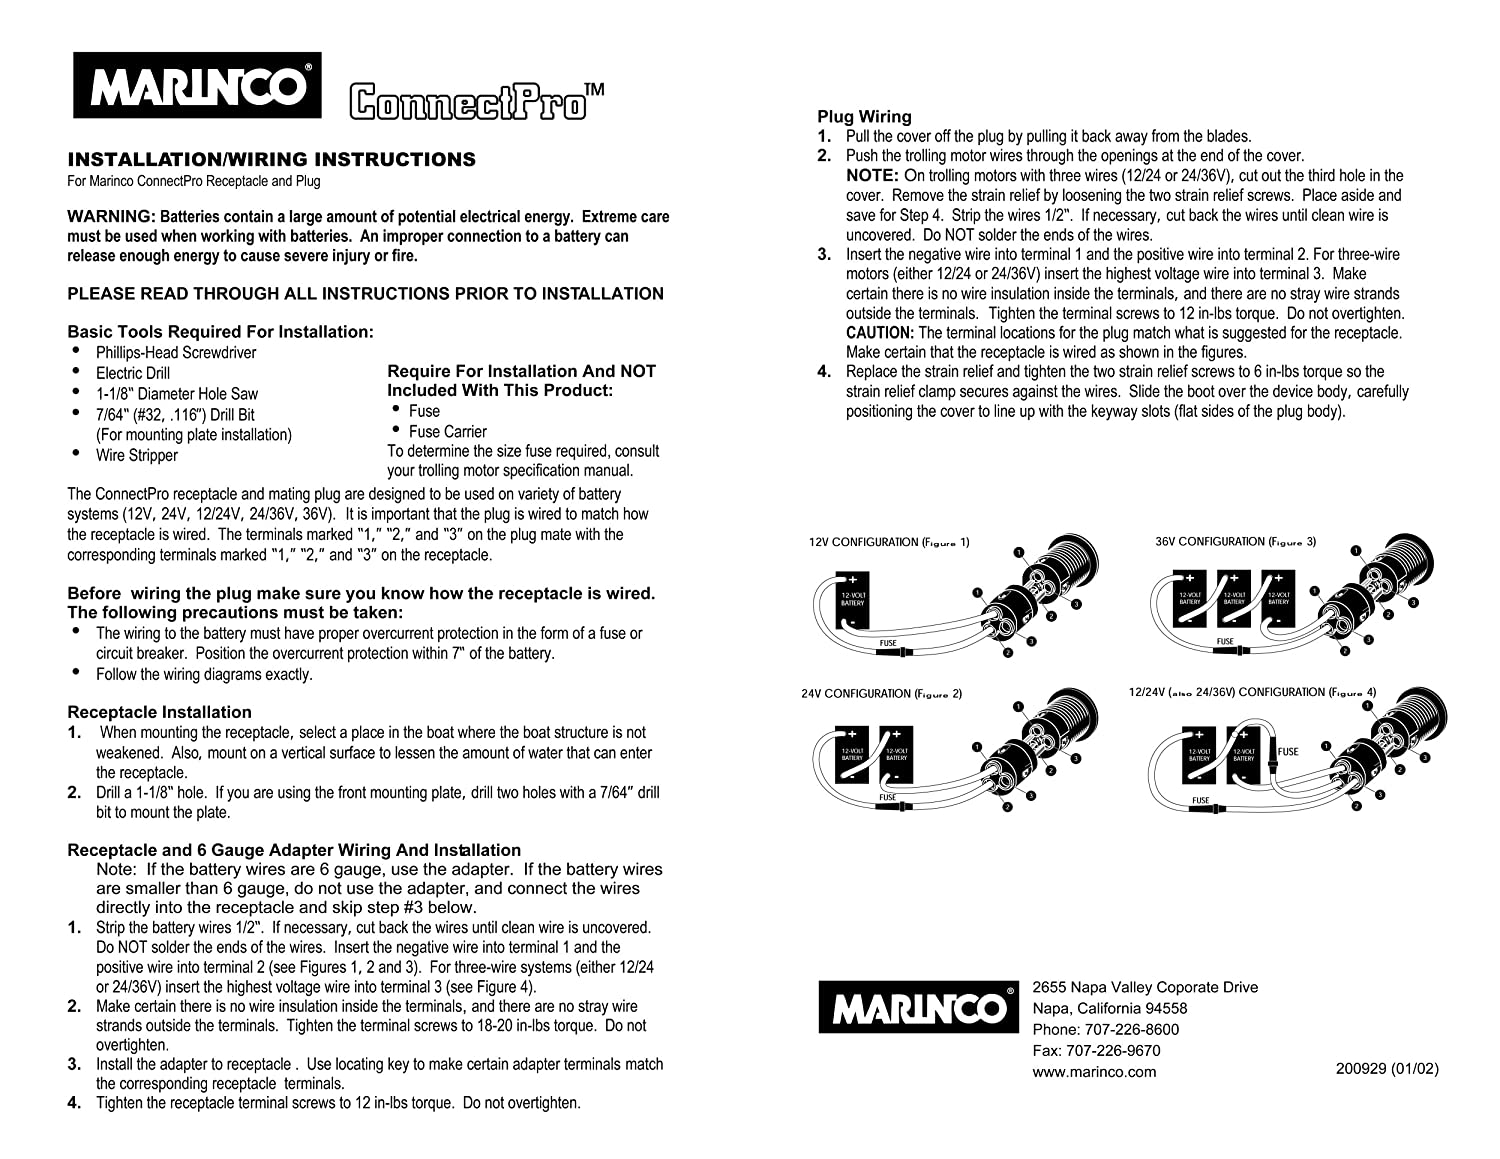 91ULQH2Yk6S._SL1500_ amazon com marinco 2 wire connectpro plug sports & outdoors marinco 12v plug wiring diagram at fashall.co